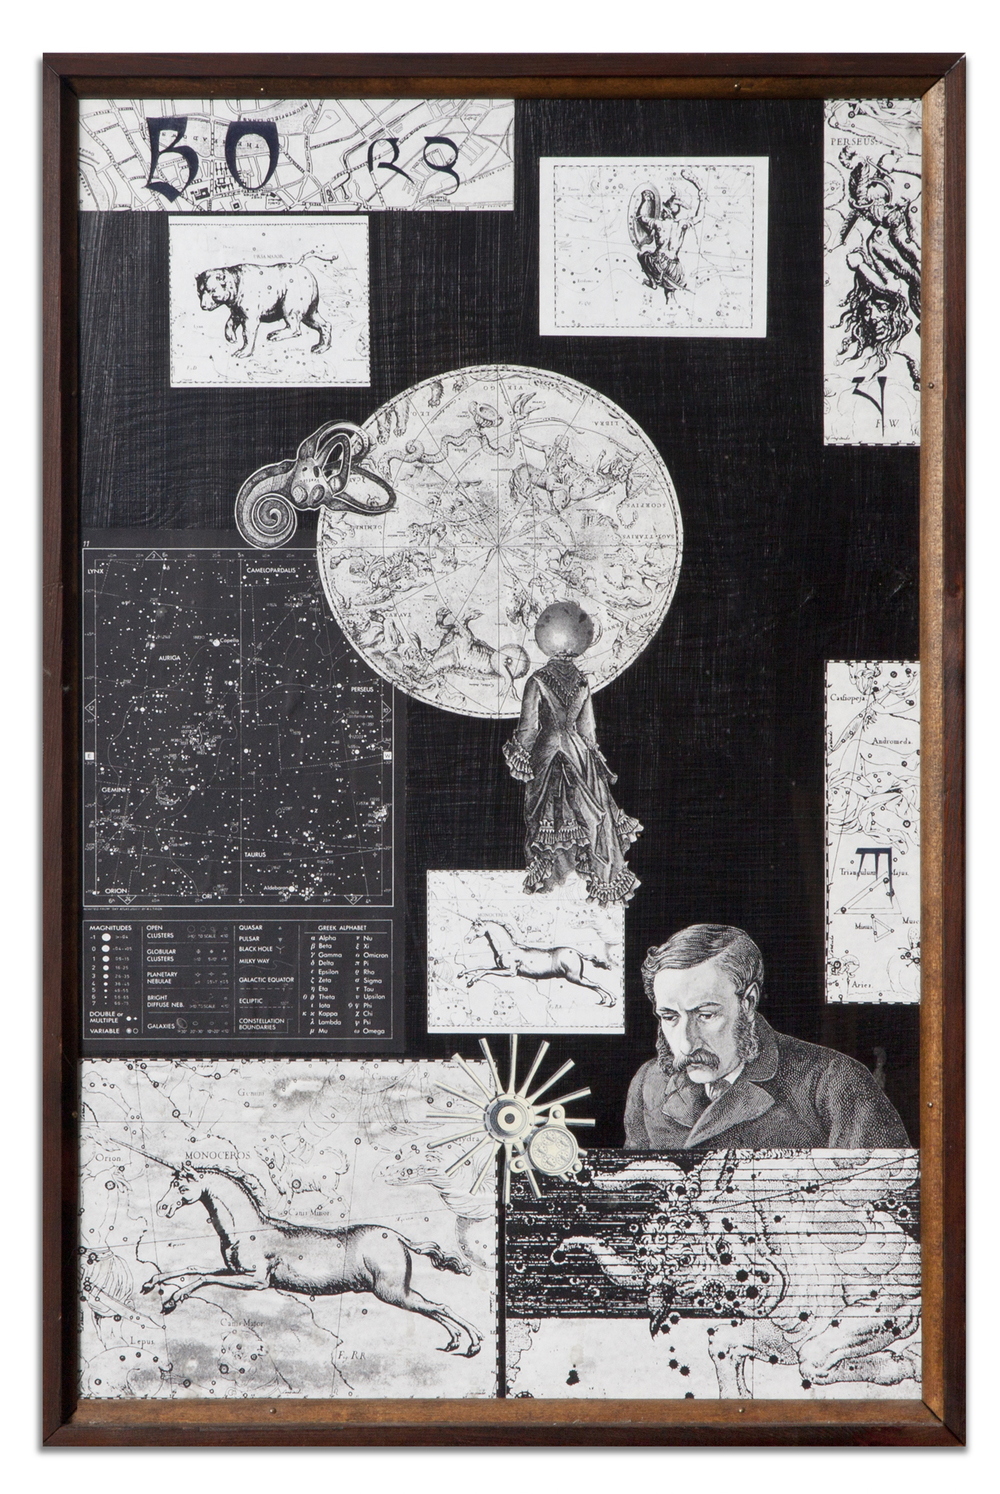 Lawrence Jordan,  BULLETIN BOARD #2: LEGENDS OF THE STARS , 2000, collage black BG, 24 x 16 inches